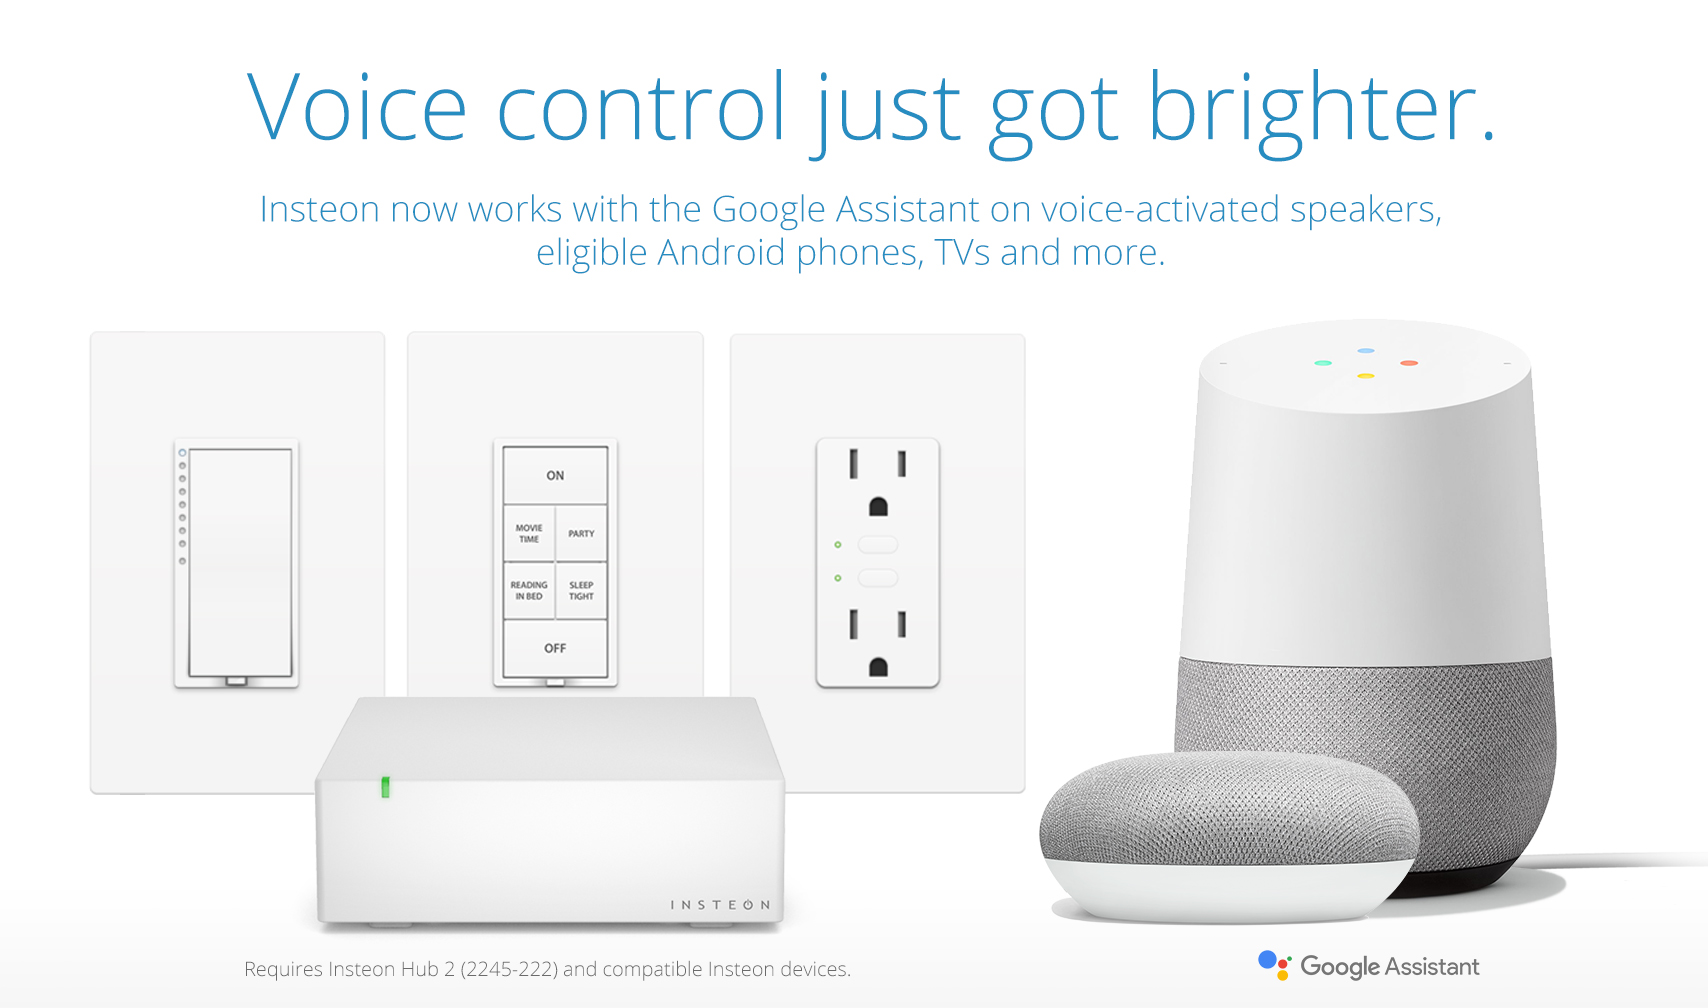 Insteon works with the Google Assistant — Insteon